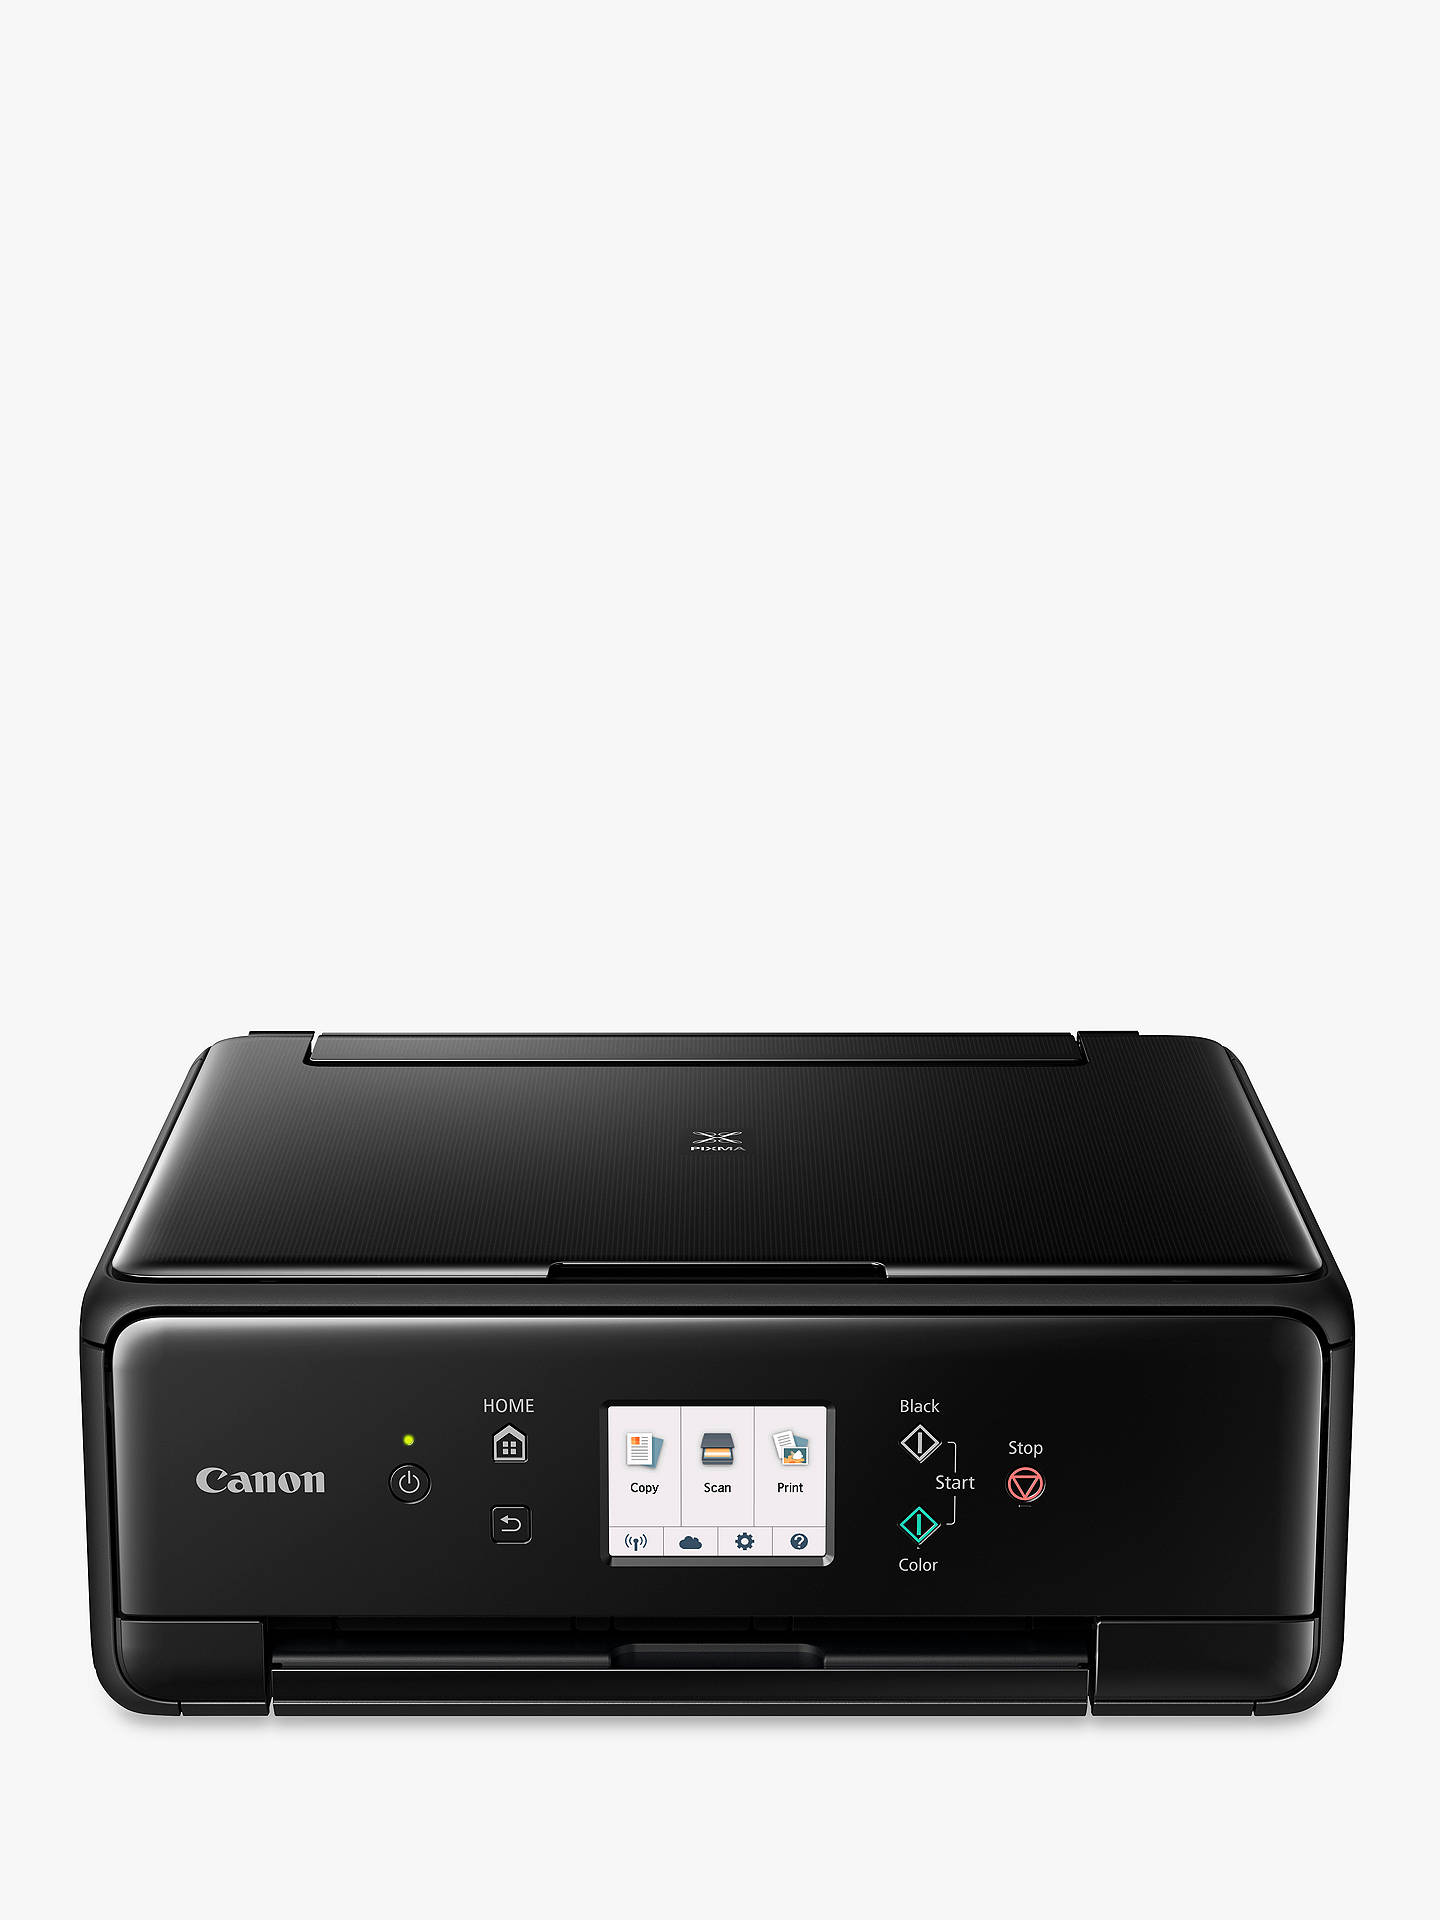 Buy Canon PIXMA TS6150 All-in-One Wireless Wi-Fi Printer with Touch Screen, Black Online at johnlewis.com